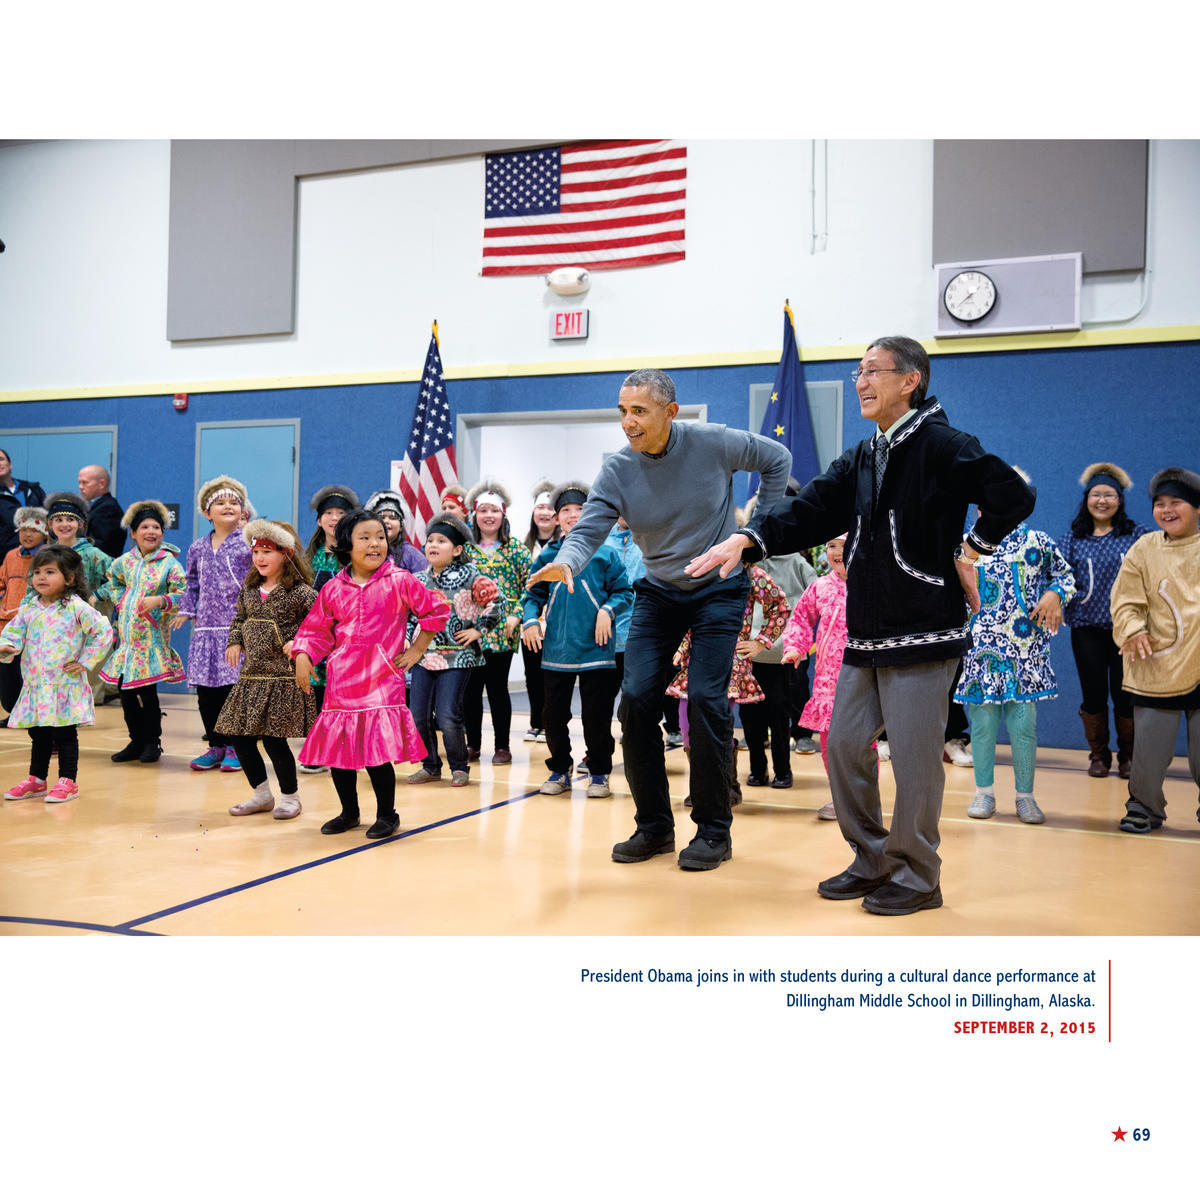 Obama Dancing, Exclusive Images from Obama's White House Photographer's New Children's Book